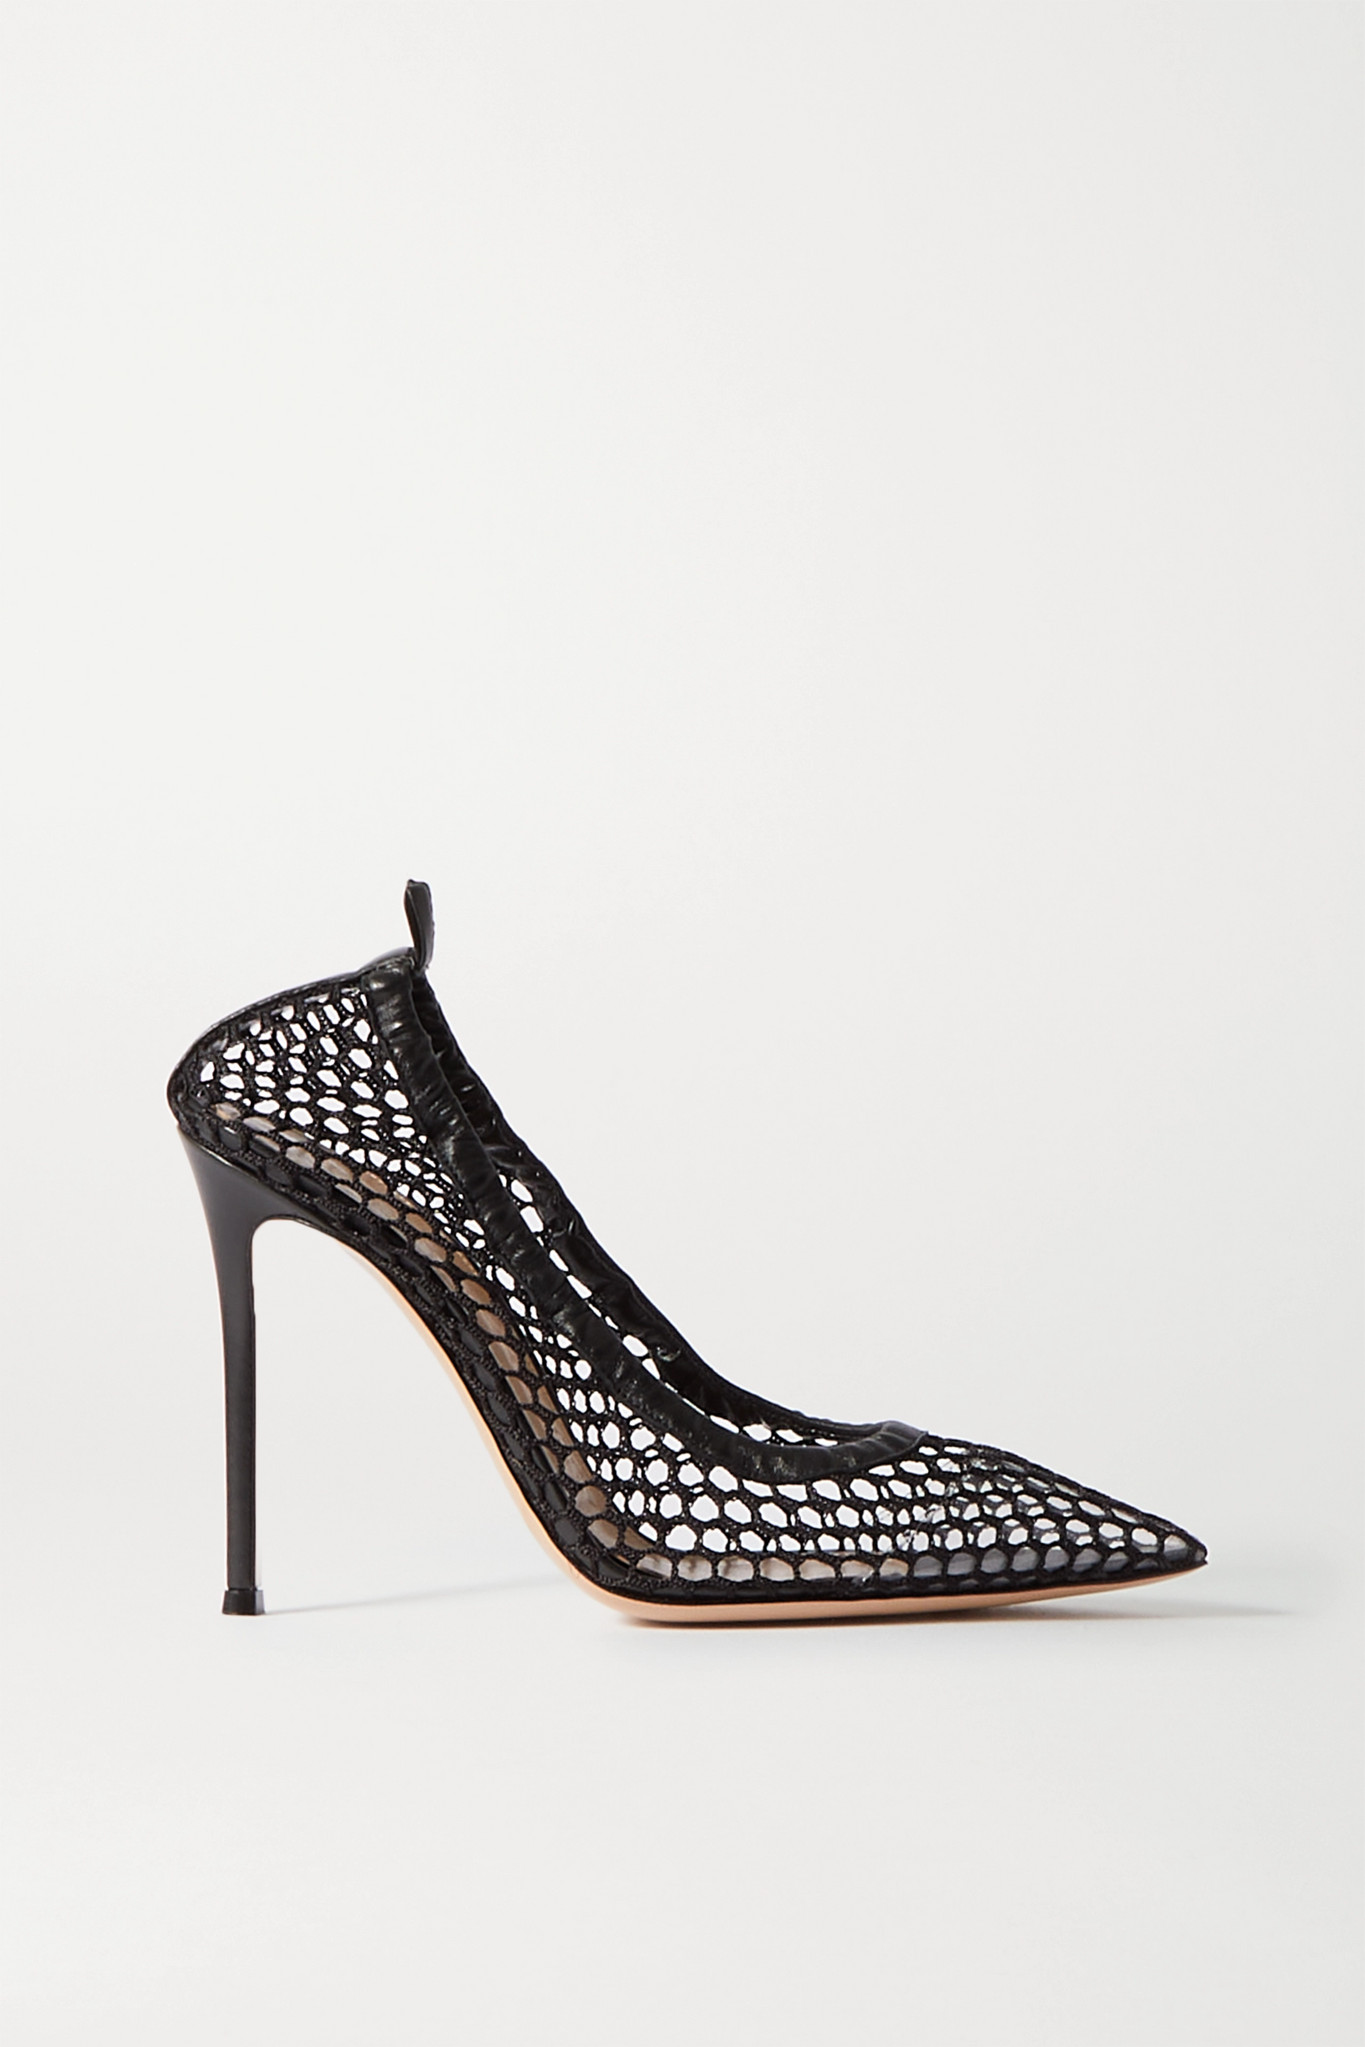 GIANVITO ROSSI - 105 Leather-trimmed Fishnet Pumps - Black - IT37.5